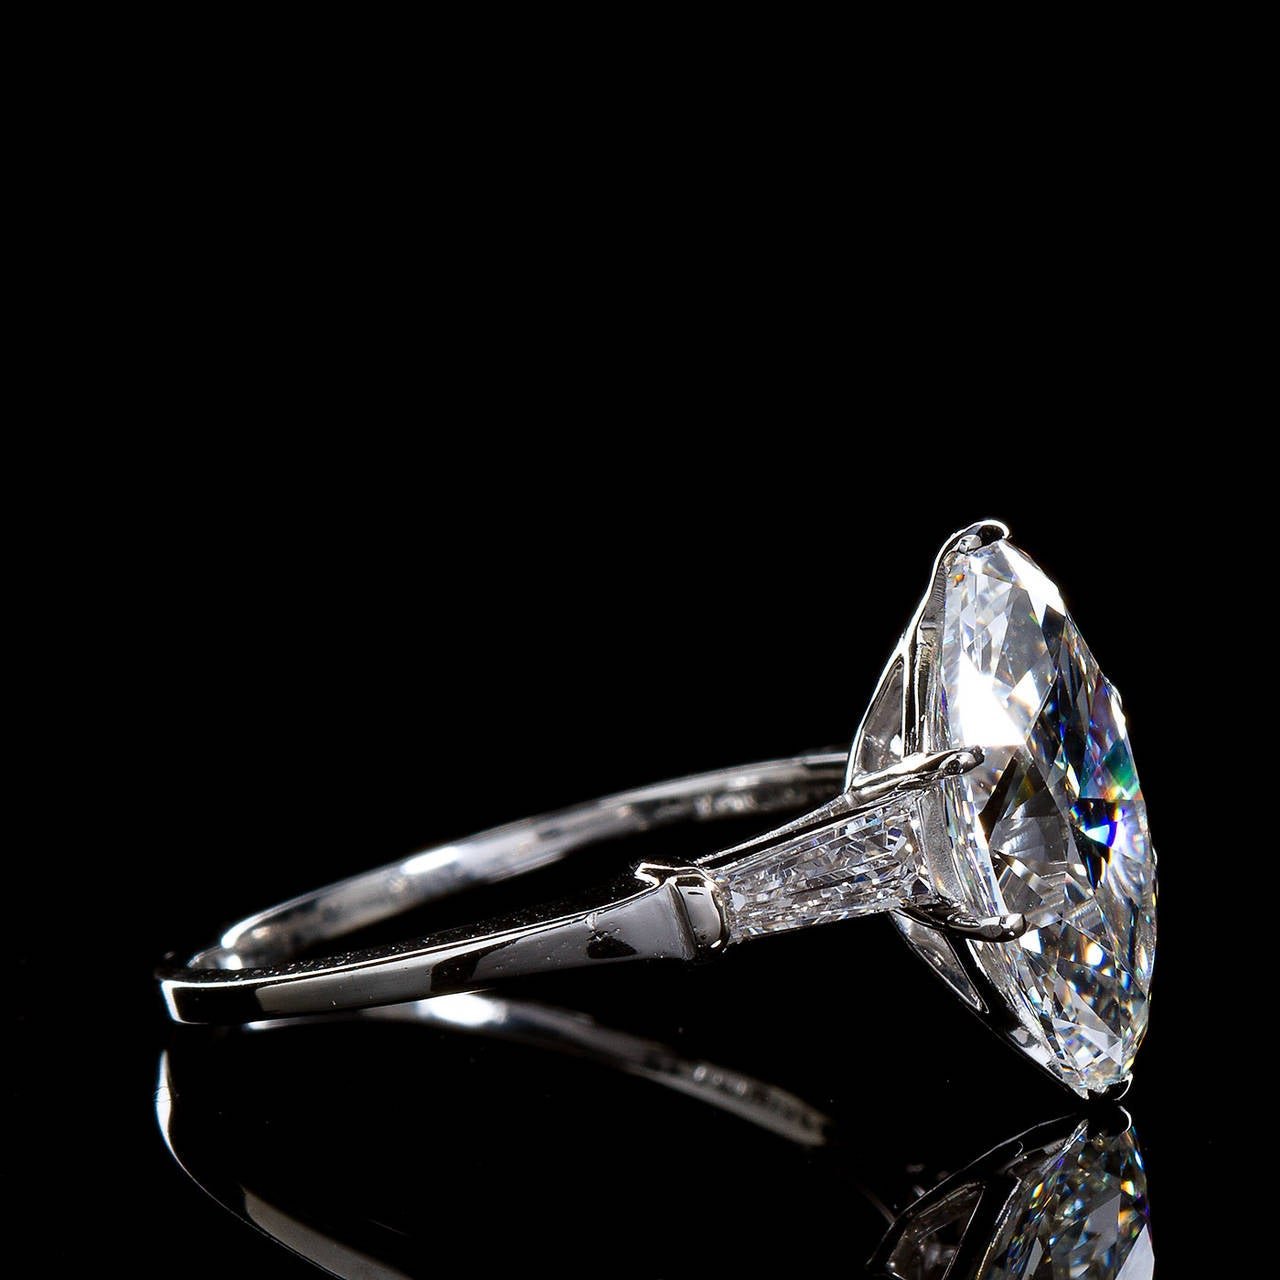 3 Carat Oval Diamond Tapered Baguettes F/VS1 GIA Engagement Ring.  A classic oval shaped diamond with tapered baguette side stones platinum ring. The center stone is a 3.09 carat F color VS1 clarity diamond with an accompanying GIA diamond